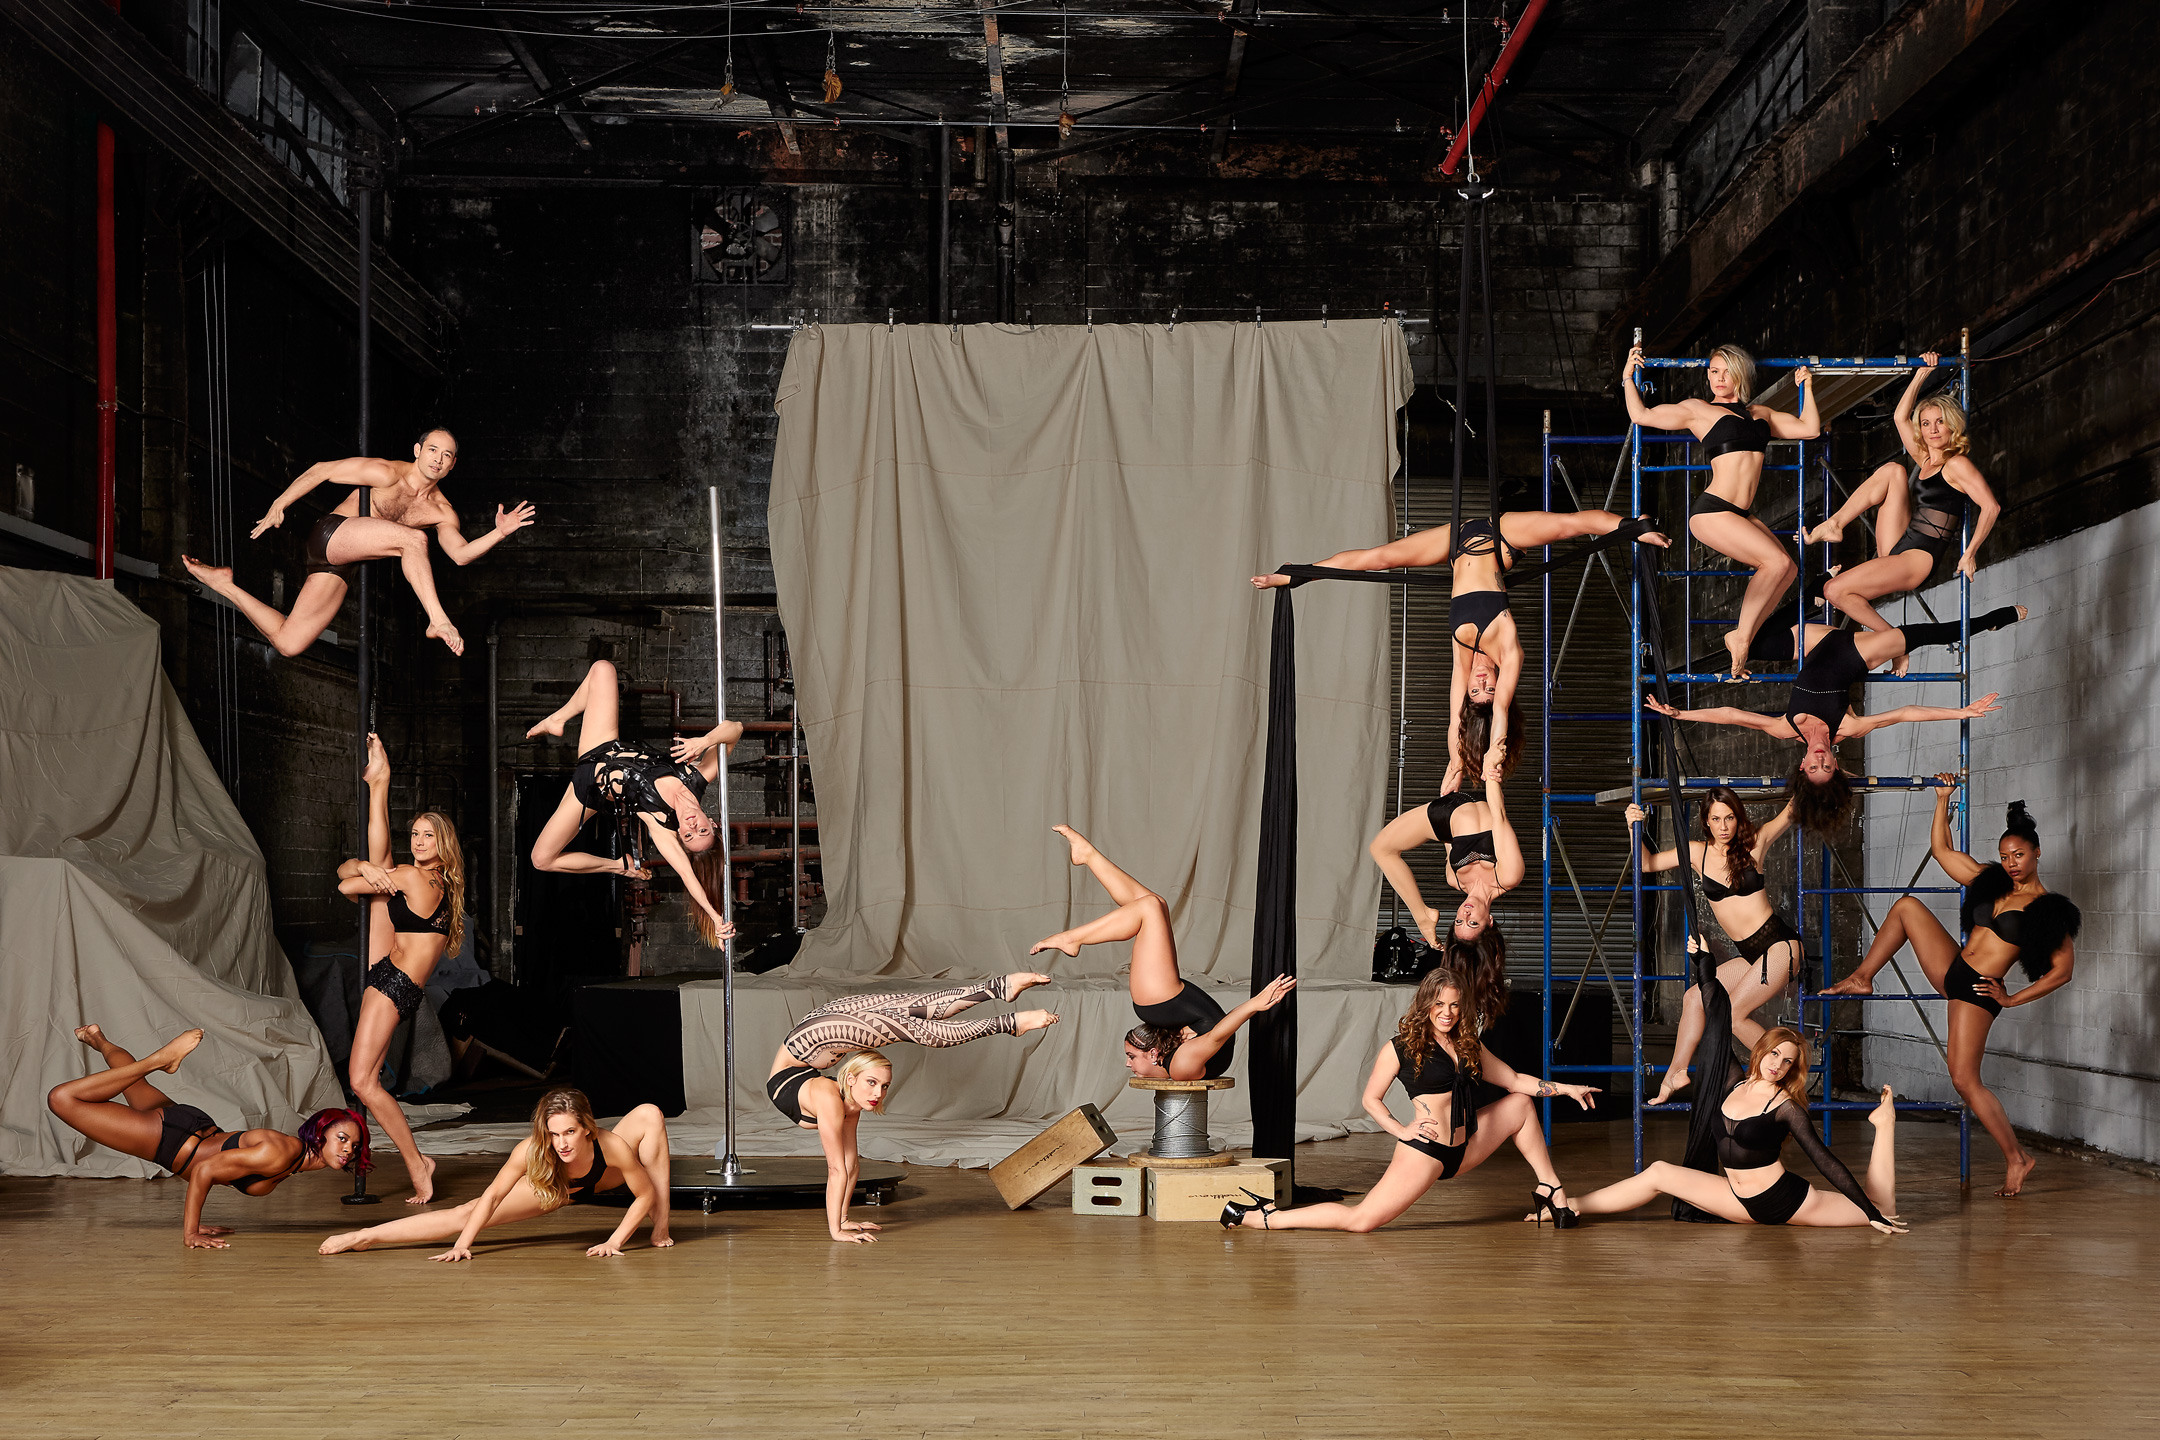 Michel Leroy Photographer behind the scenes with Body and Pole Athletes